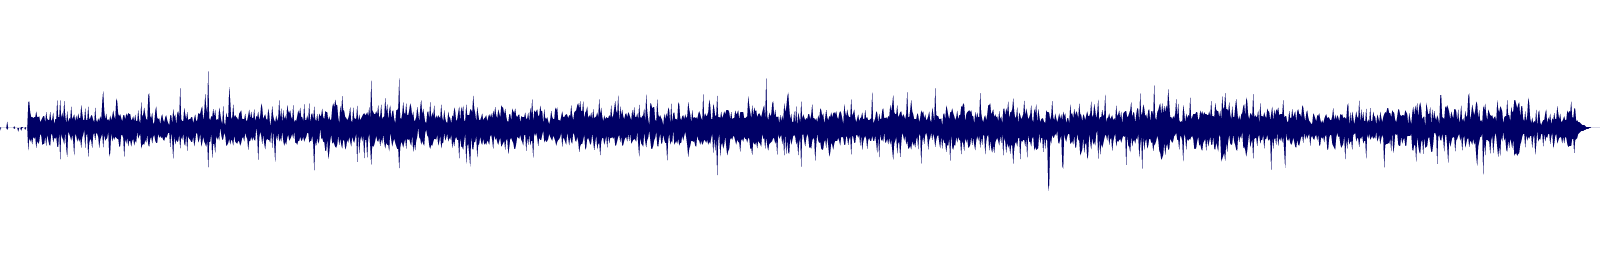 waveform of track #112628